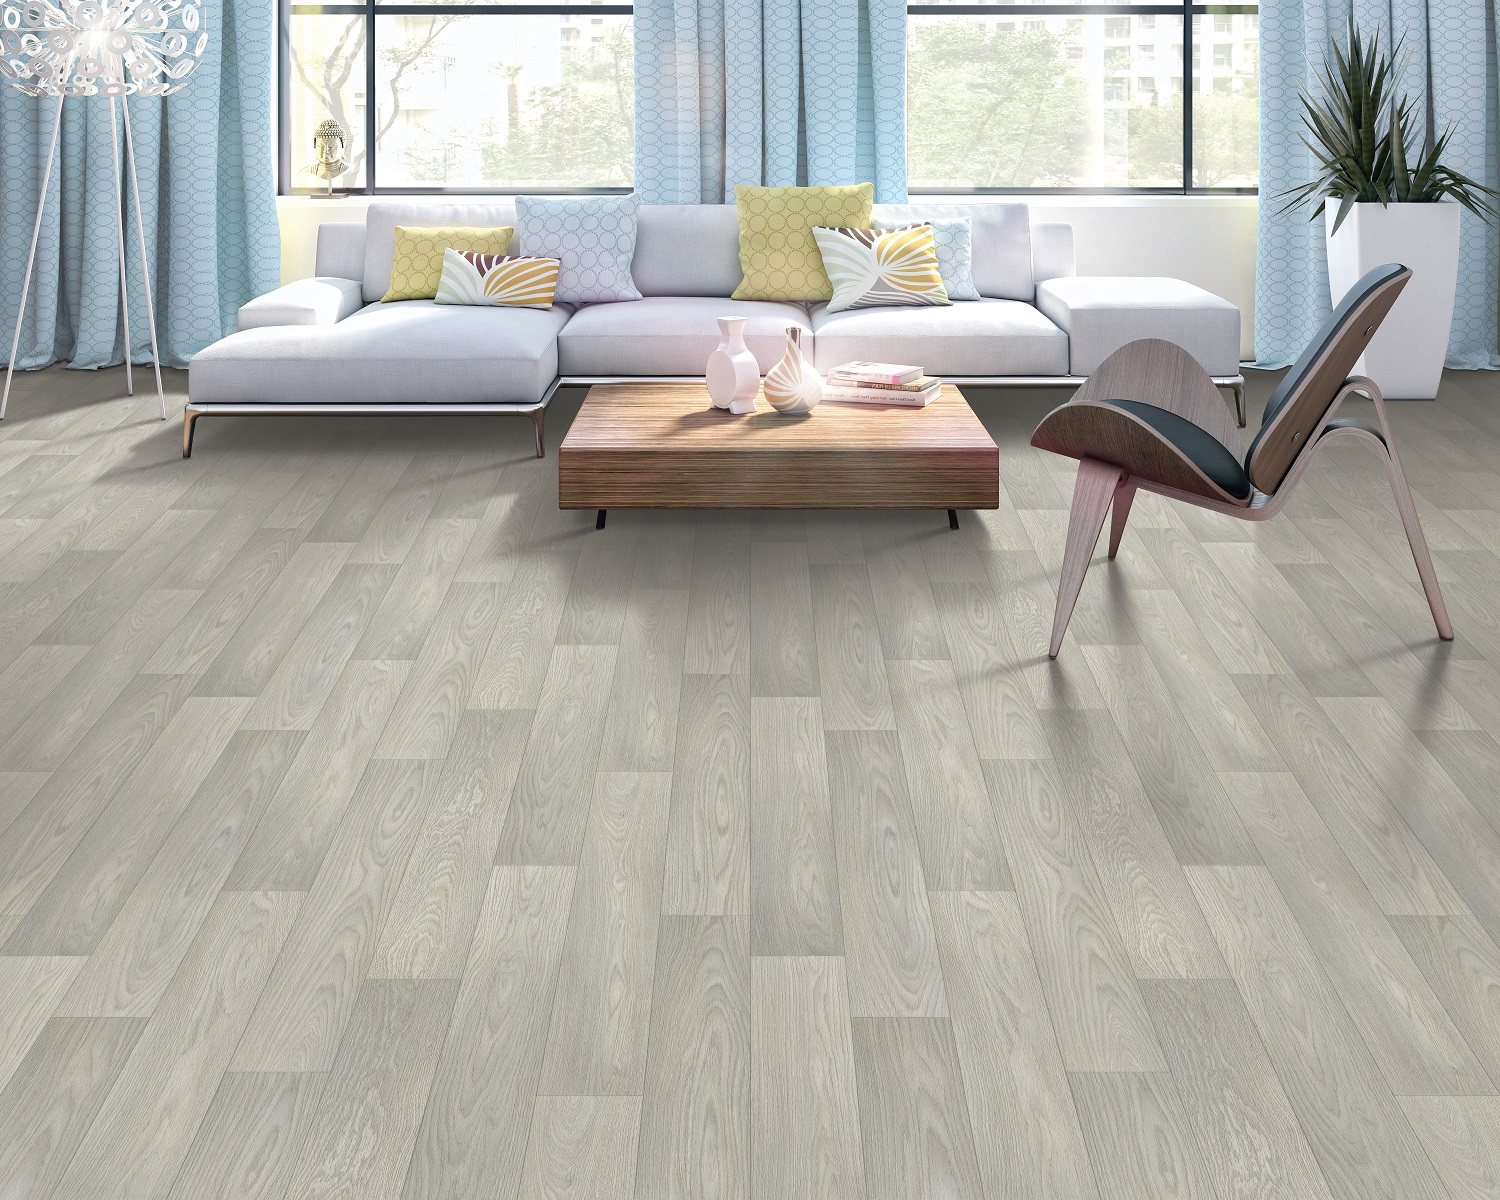 Thick and durable vinyl plank flooring in a Maple Ridge, BC home